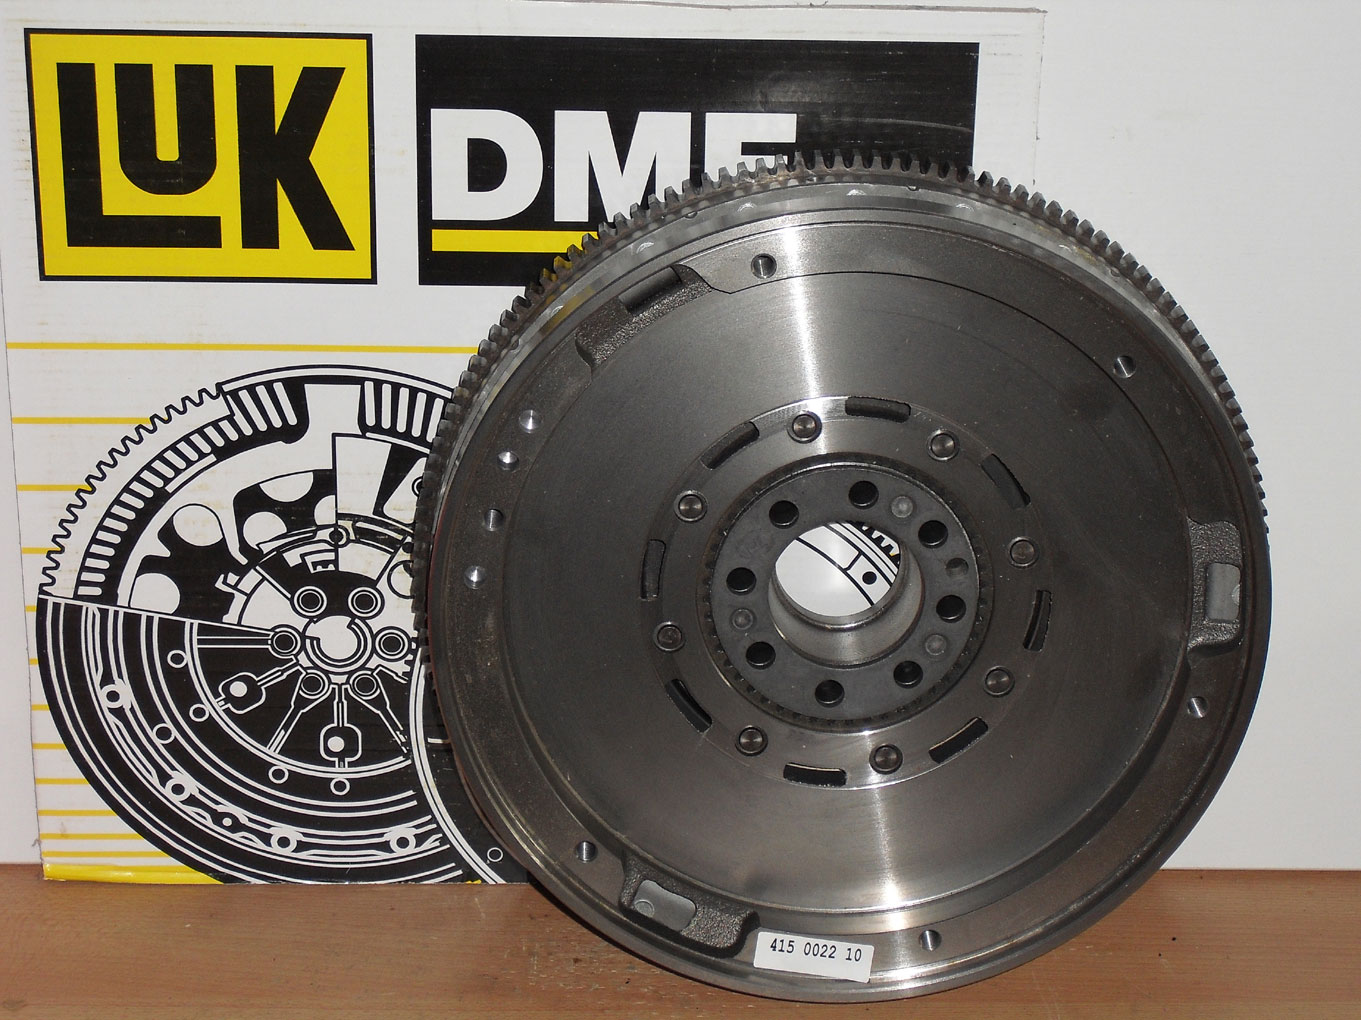 lightweight flywheels (CrMo steel)